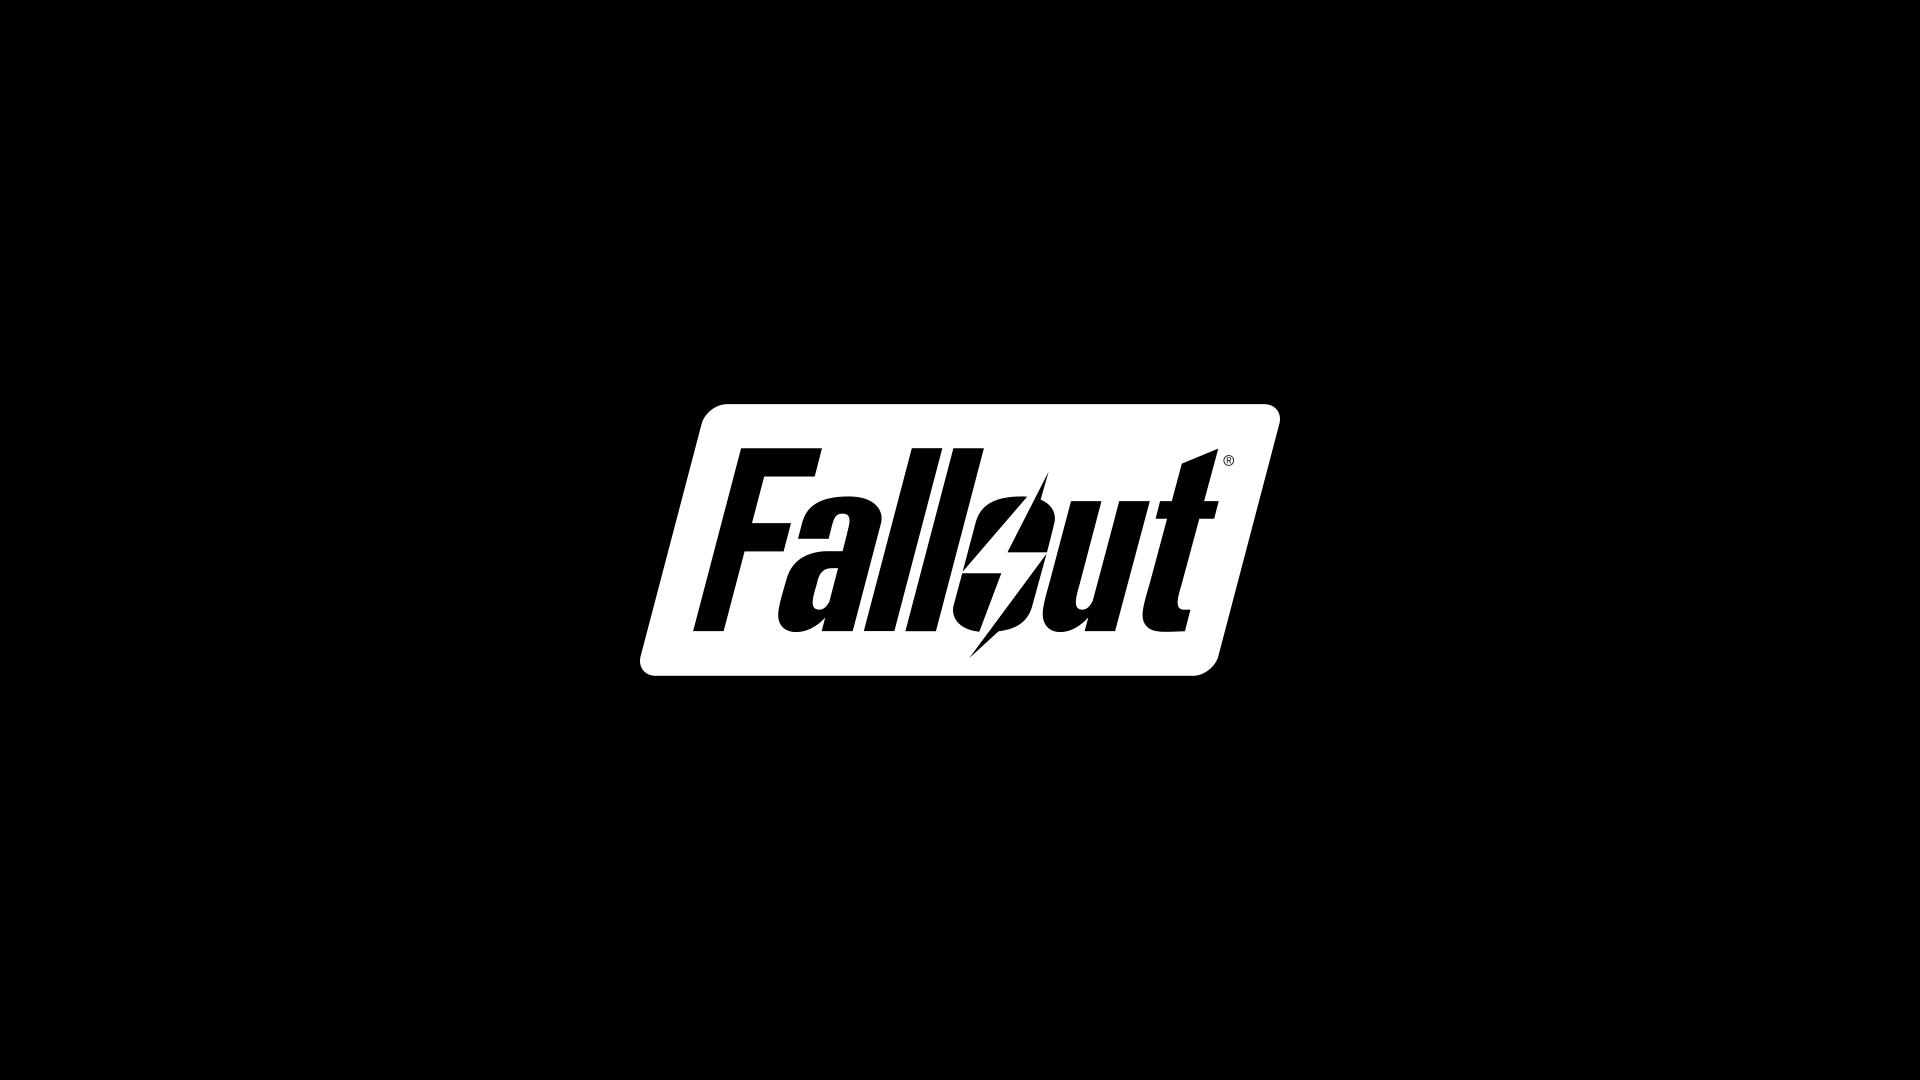 Fall out Hd wallpaper for download